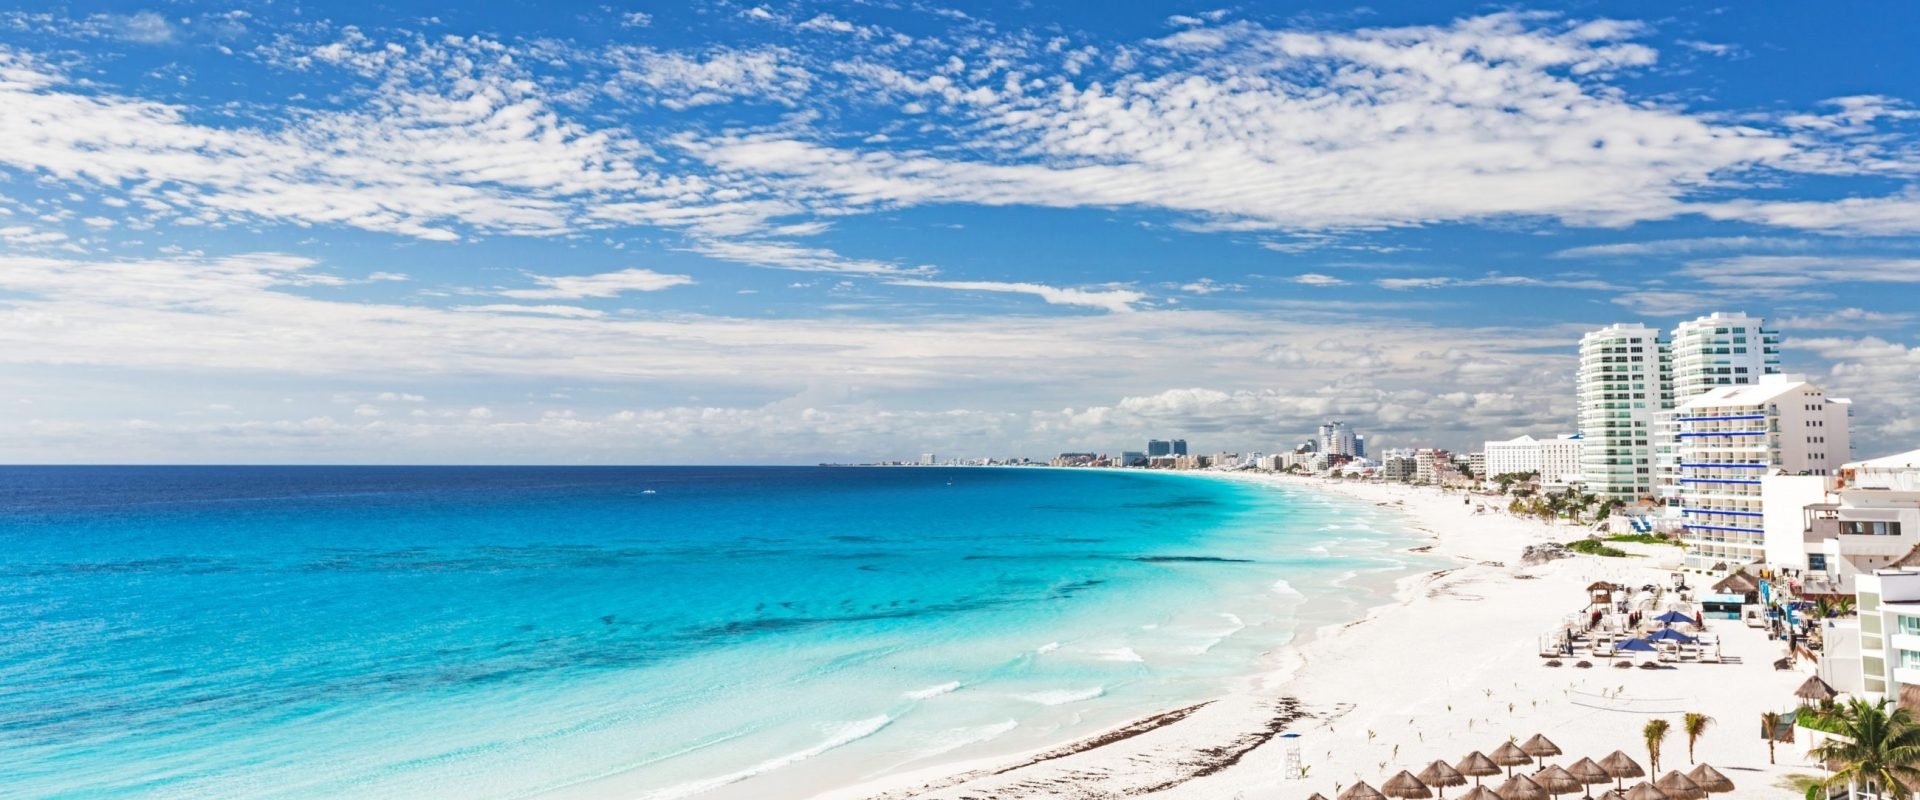 The Best Flight and Hotel Deals in Cancun